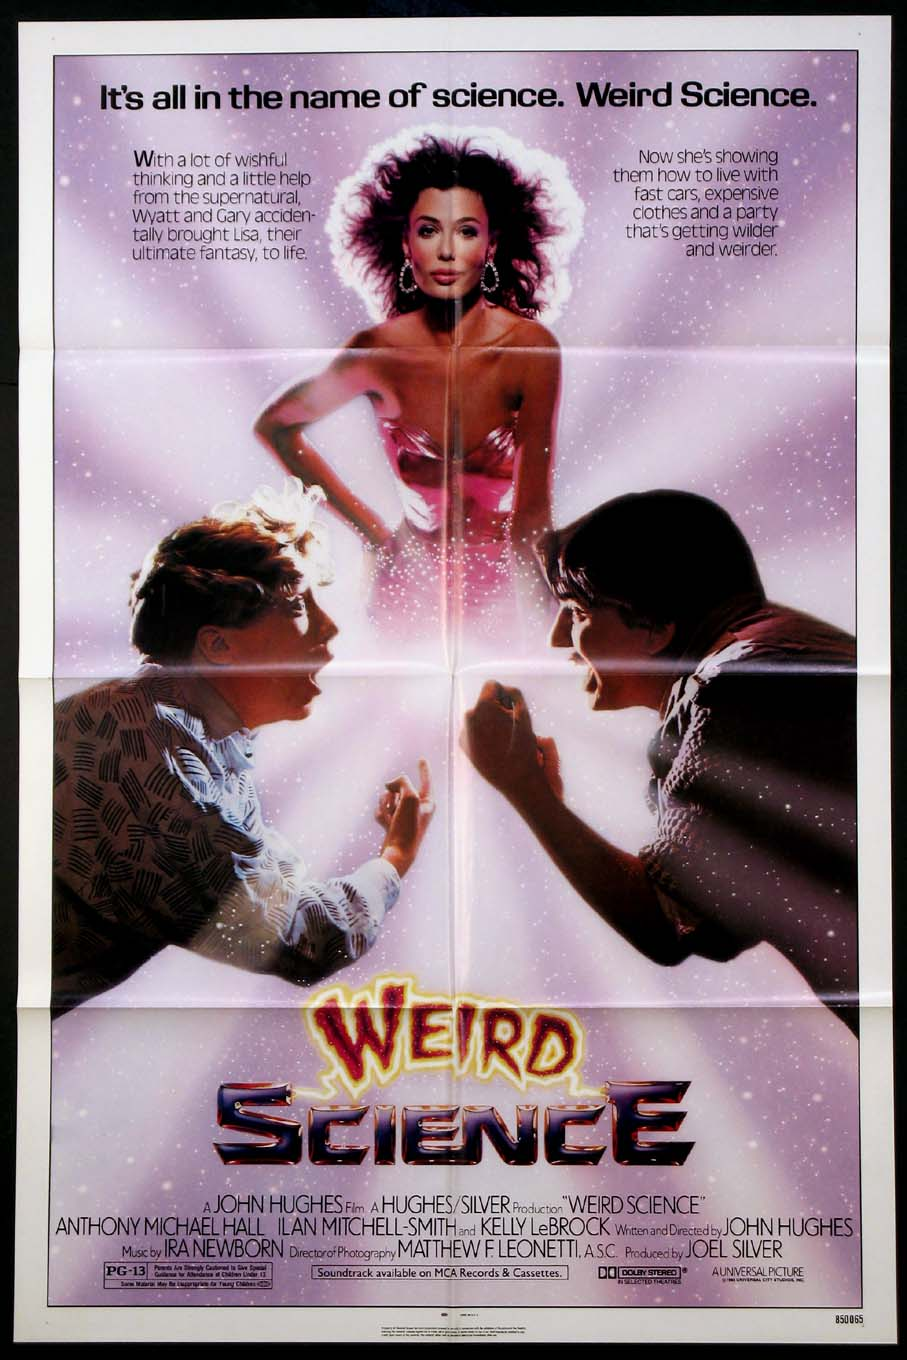 WEIRD SCIENCE @ FilmPosters.com